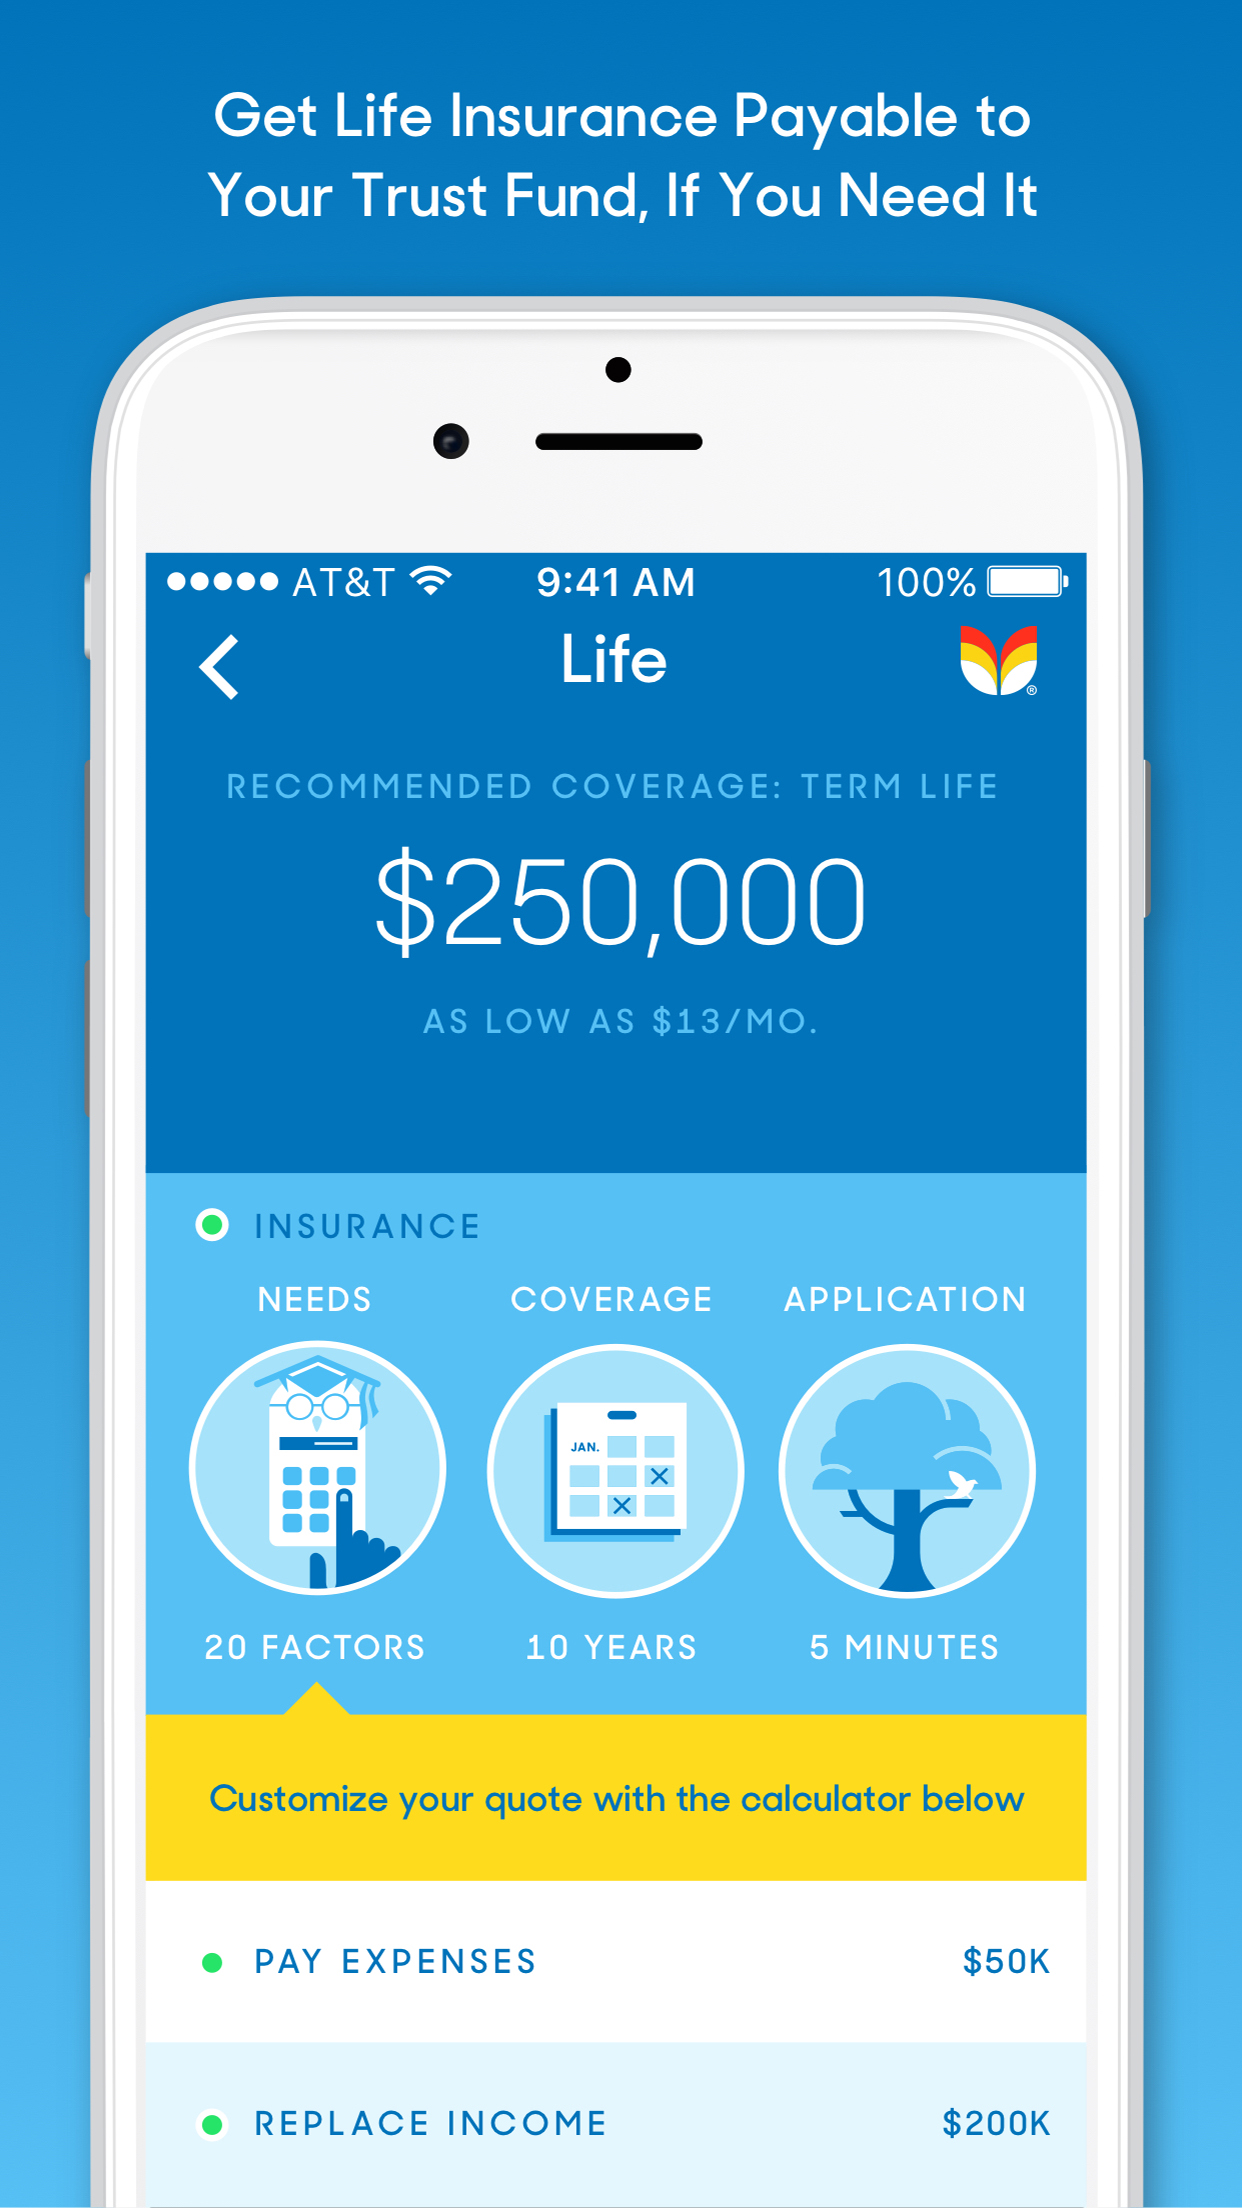 Life: - This section of the app enables users to purchase affordable, term life insurance to help users fund their trust someday, and help their family members cover bills, pay off a mortgage, or provide for children's future college expenses.Tomorrow helps calculate the right amount of coverage users need based on information already provided in the app.Twenty-year policies start at about $13-$14 per month for a $250,000 payout*.Tomorrow is licensed to offer life insurance in all 50 states from A-rated insurance companies, including Protective Life Insurance Company, Prudential Financial, American International Group (AIG), Mutual of Omaha, and others.